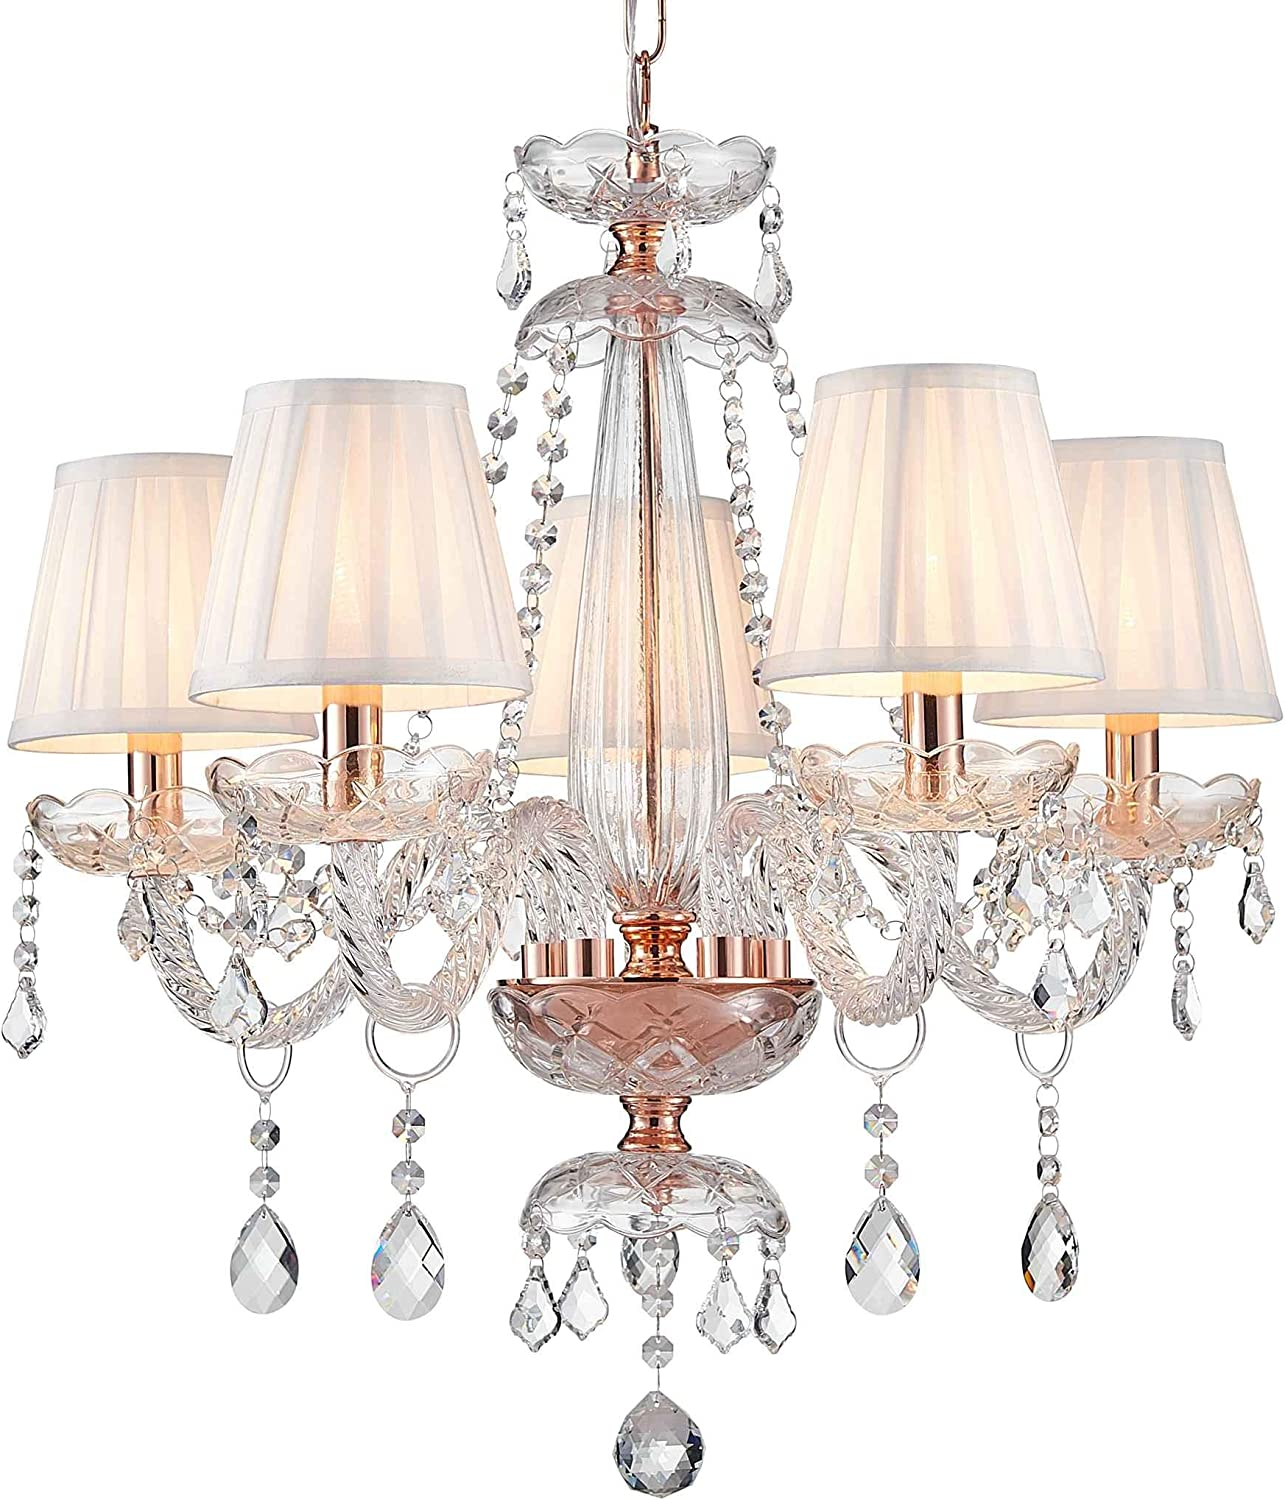 Saint Mossi Rose Gold K9 Crystal Chandelier Lighting LED Ceiling Light Fixture Pendant Lamp for Dining Room Bathroom Bedroom Livingroom 5 E12 LED Bulbs Required Height 24 x Width 25